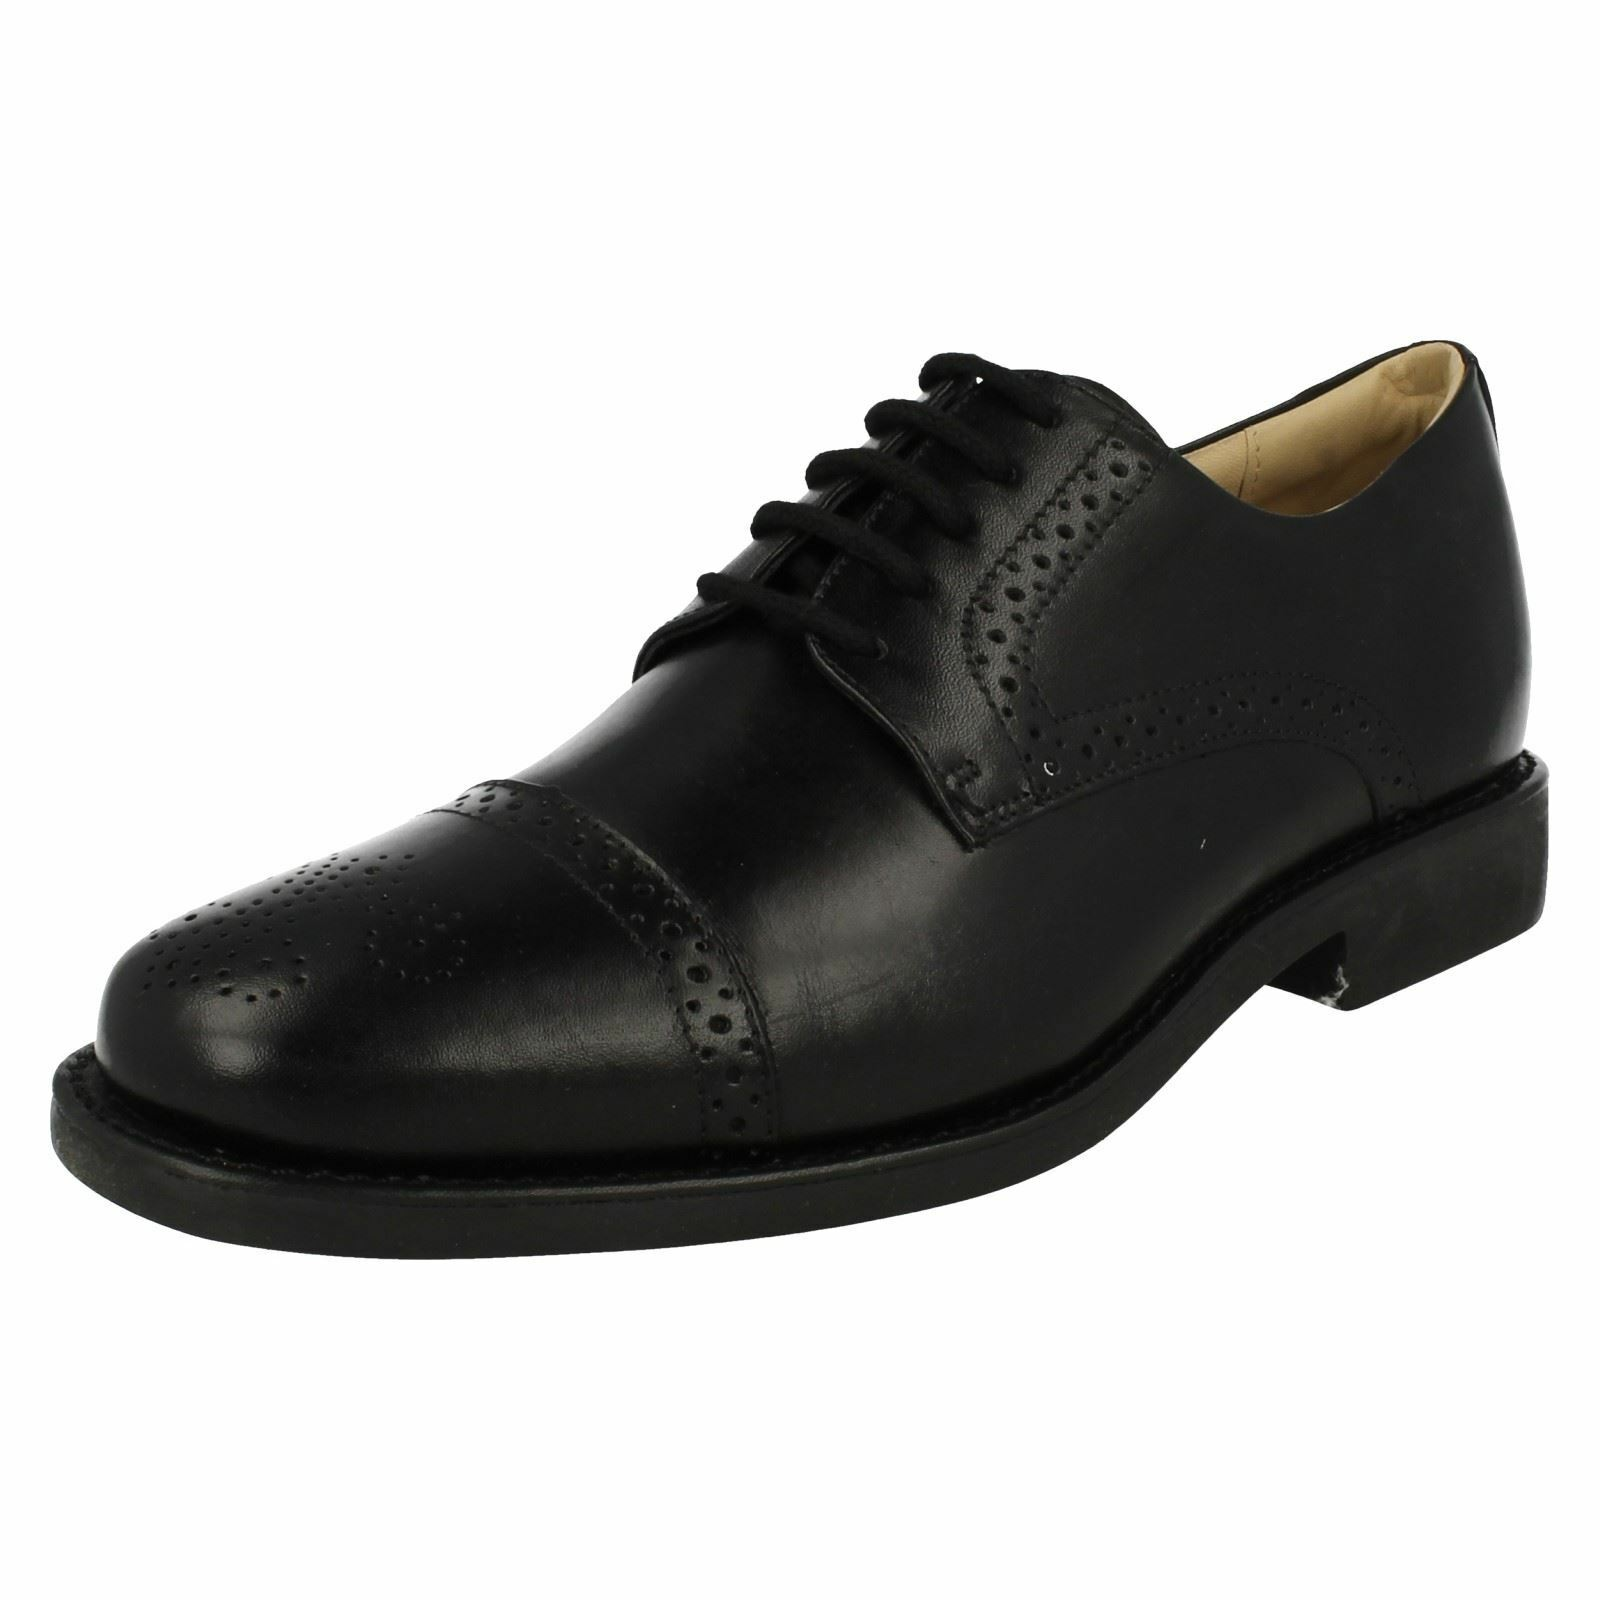 Mens Anatomic Brogue Detailed Schuhes 'Araras'